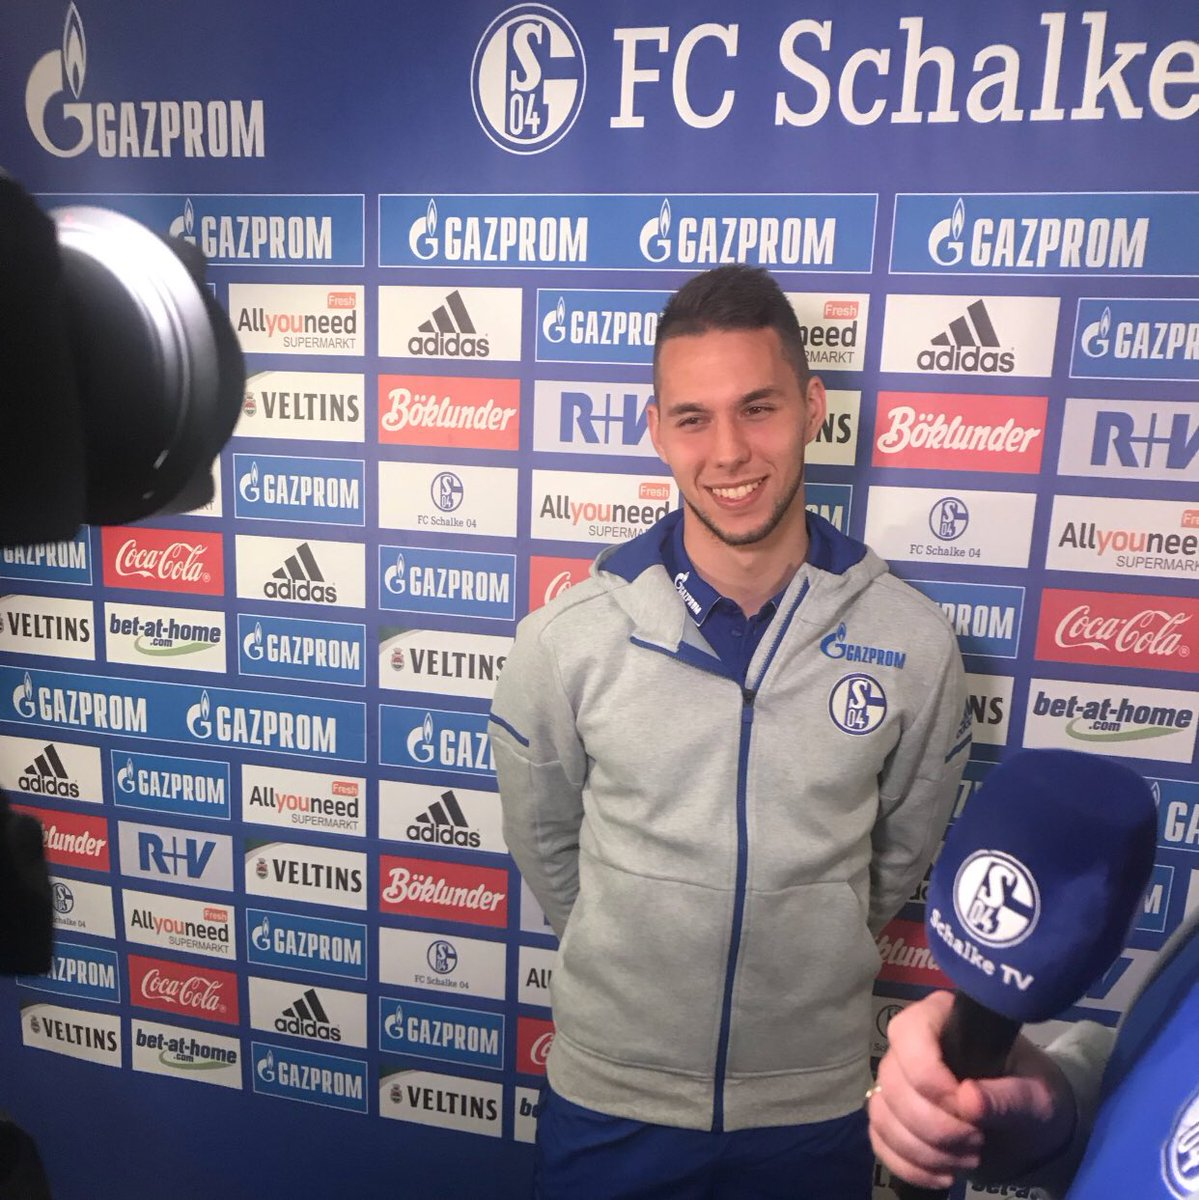 I'm very happy to open this new chapter in my career. @s04  is a big club with amazing fans and it's a privilege to be part of this. I wish to thank them for this opportunity, my injury is history, I'm ready for new challenges and sure that together we can achieve great things. https://t.co/6seoesVCBW